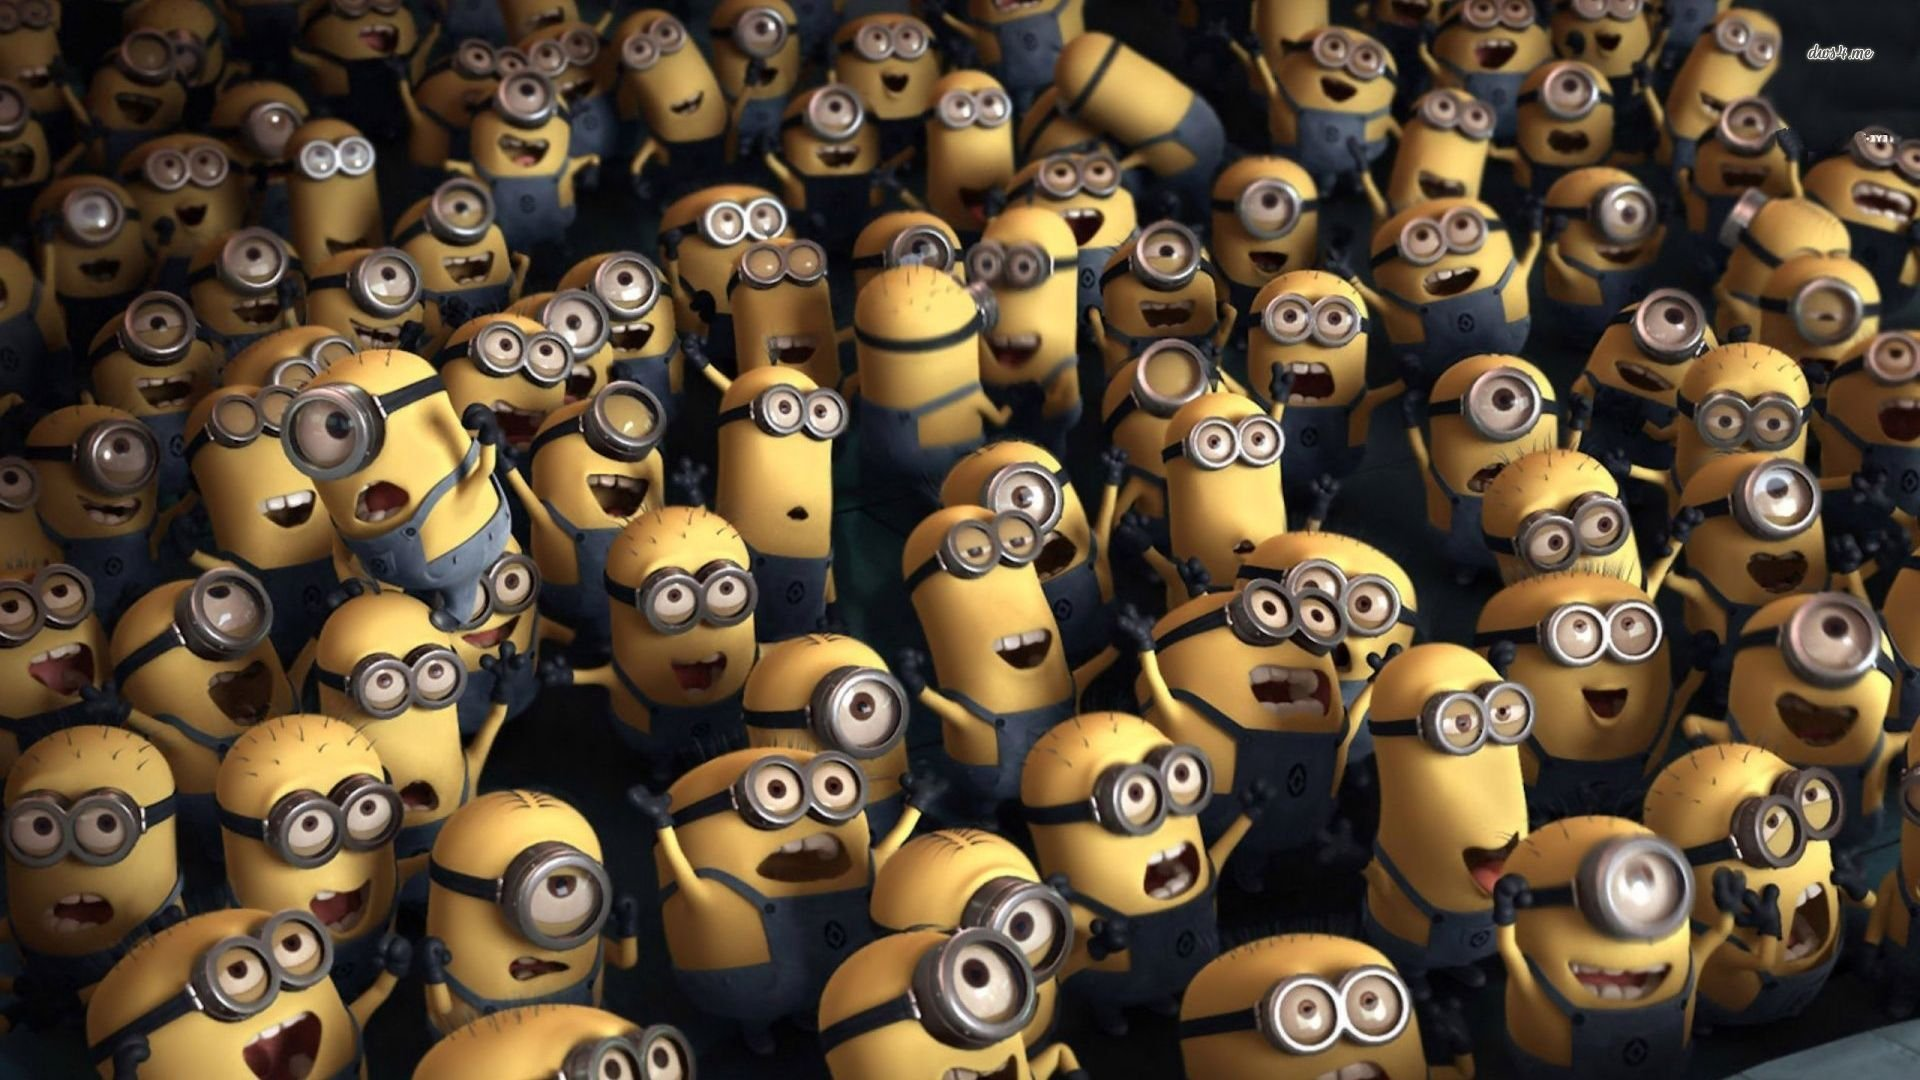 Minions-Despicable-Me-Gallery-of-Free-Download-For-1920×1080-Minions-Despicable-Me-Wall-wallpaper-wpc9007683